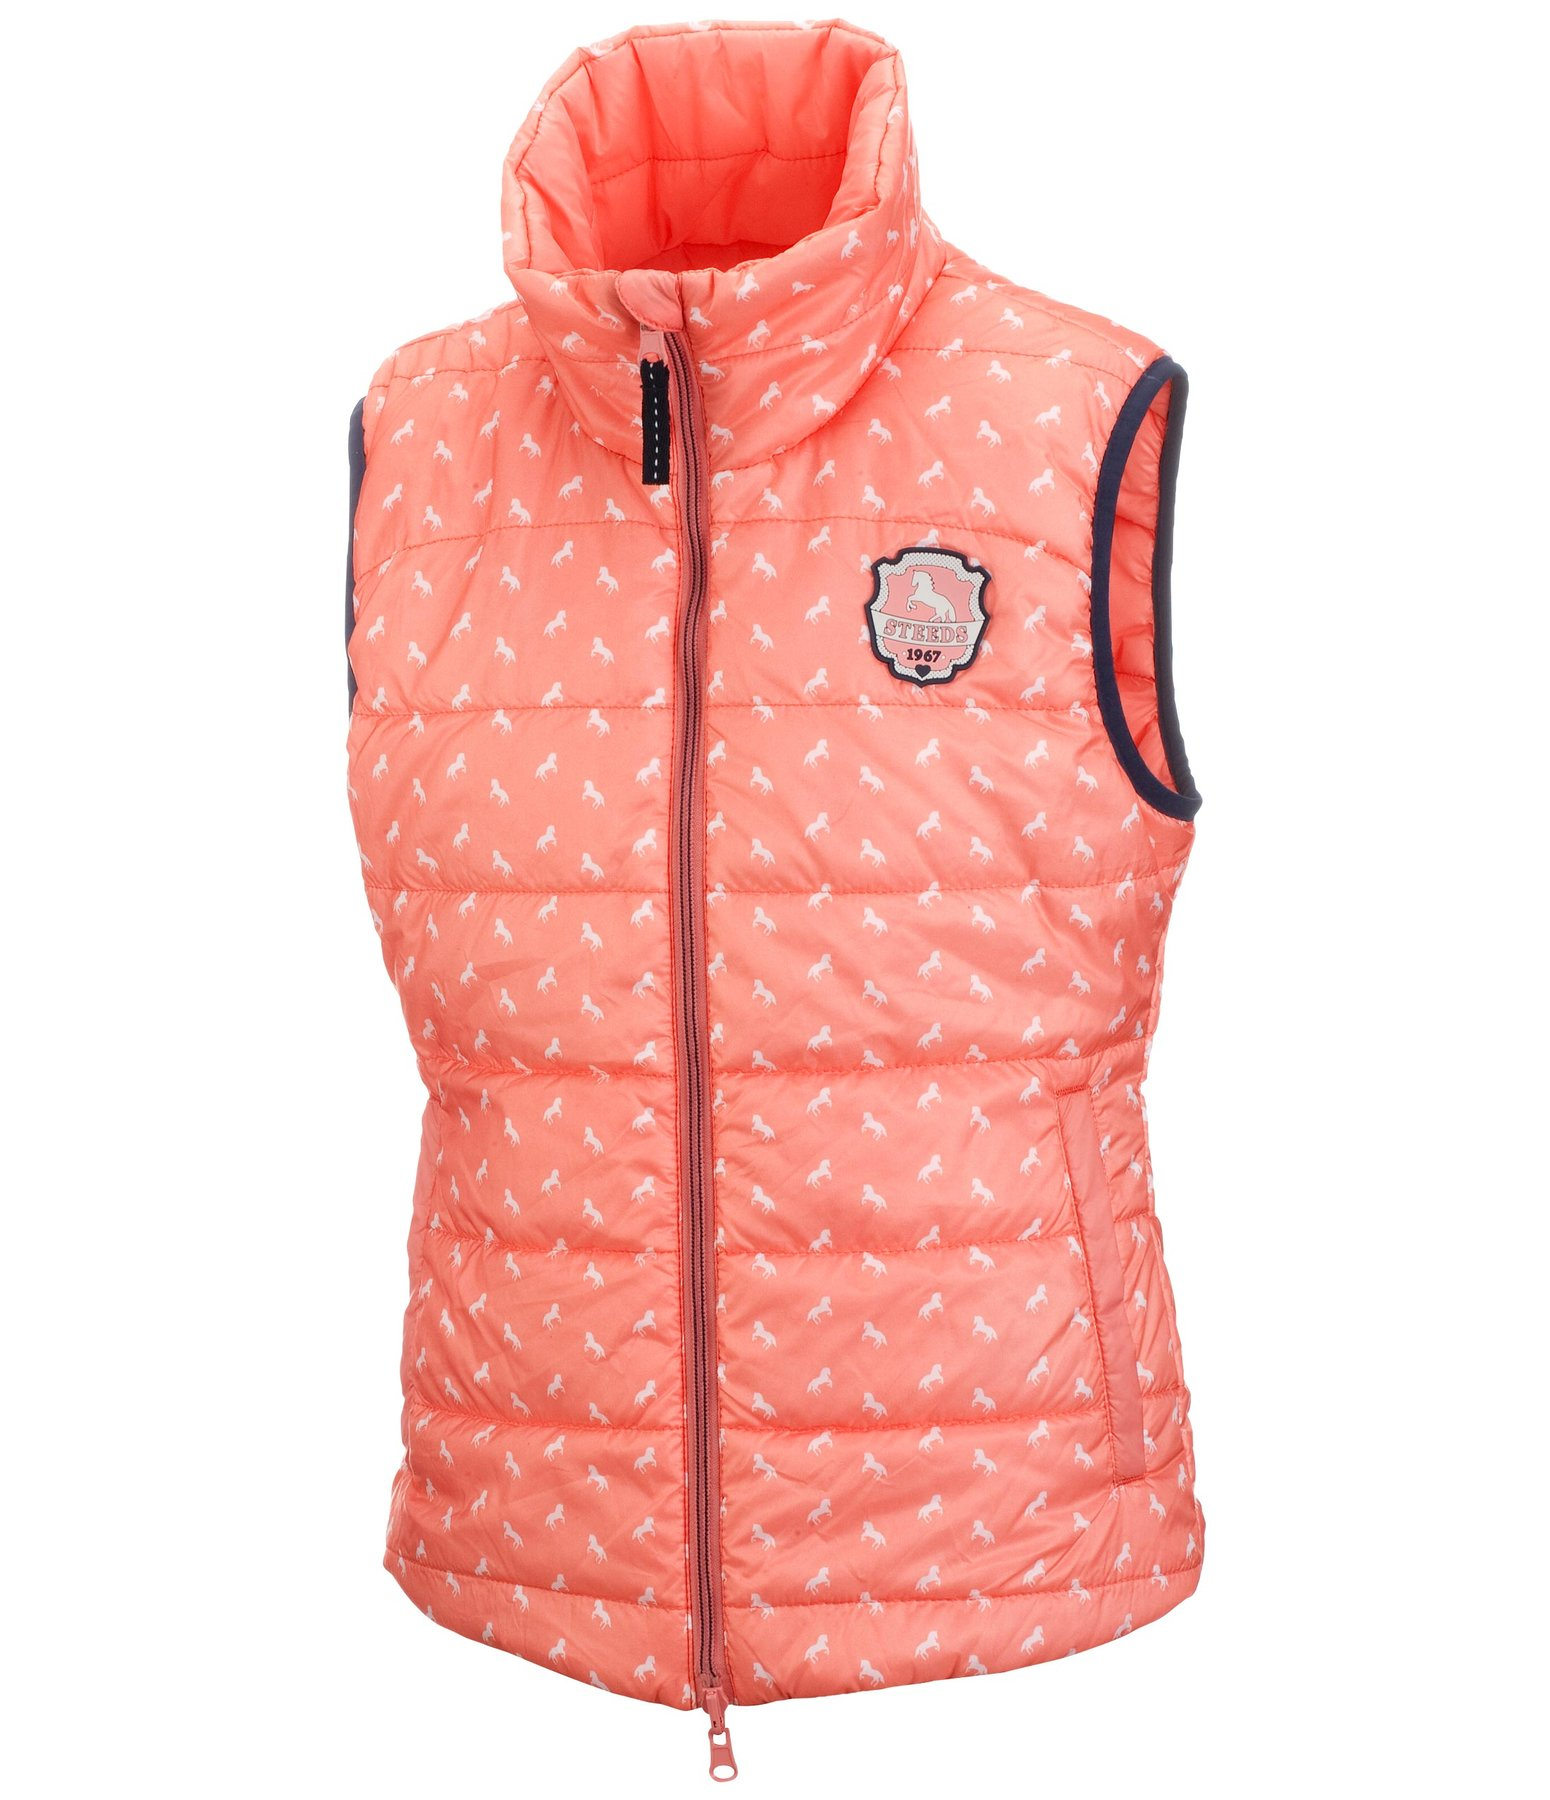 7e73f96cf STEEDS Children's Reversible Riding Gilet Coco - 680584-6Y-AP